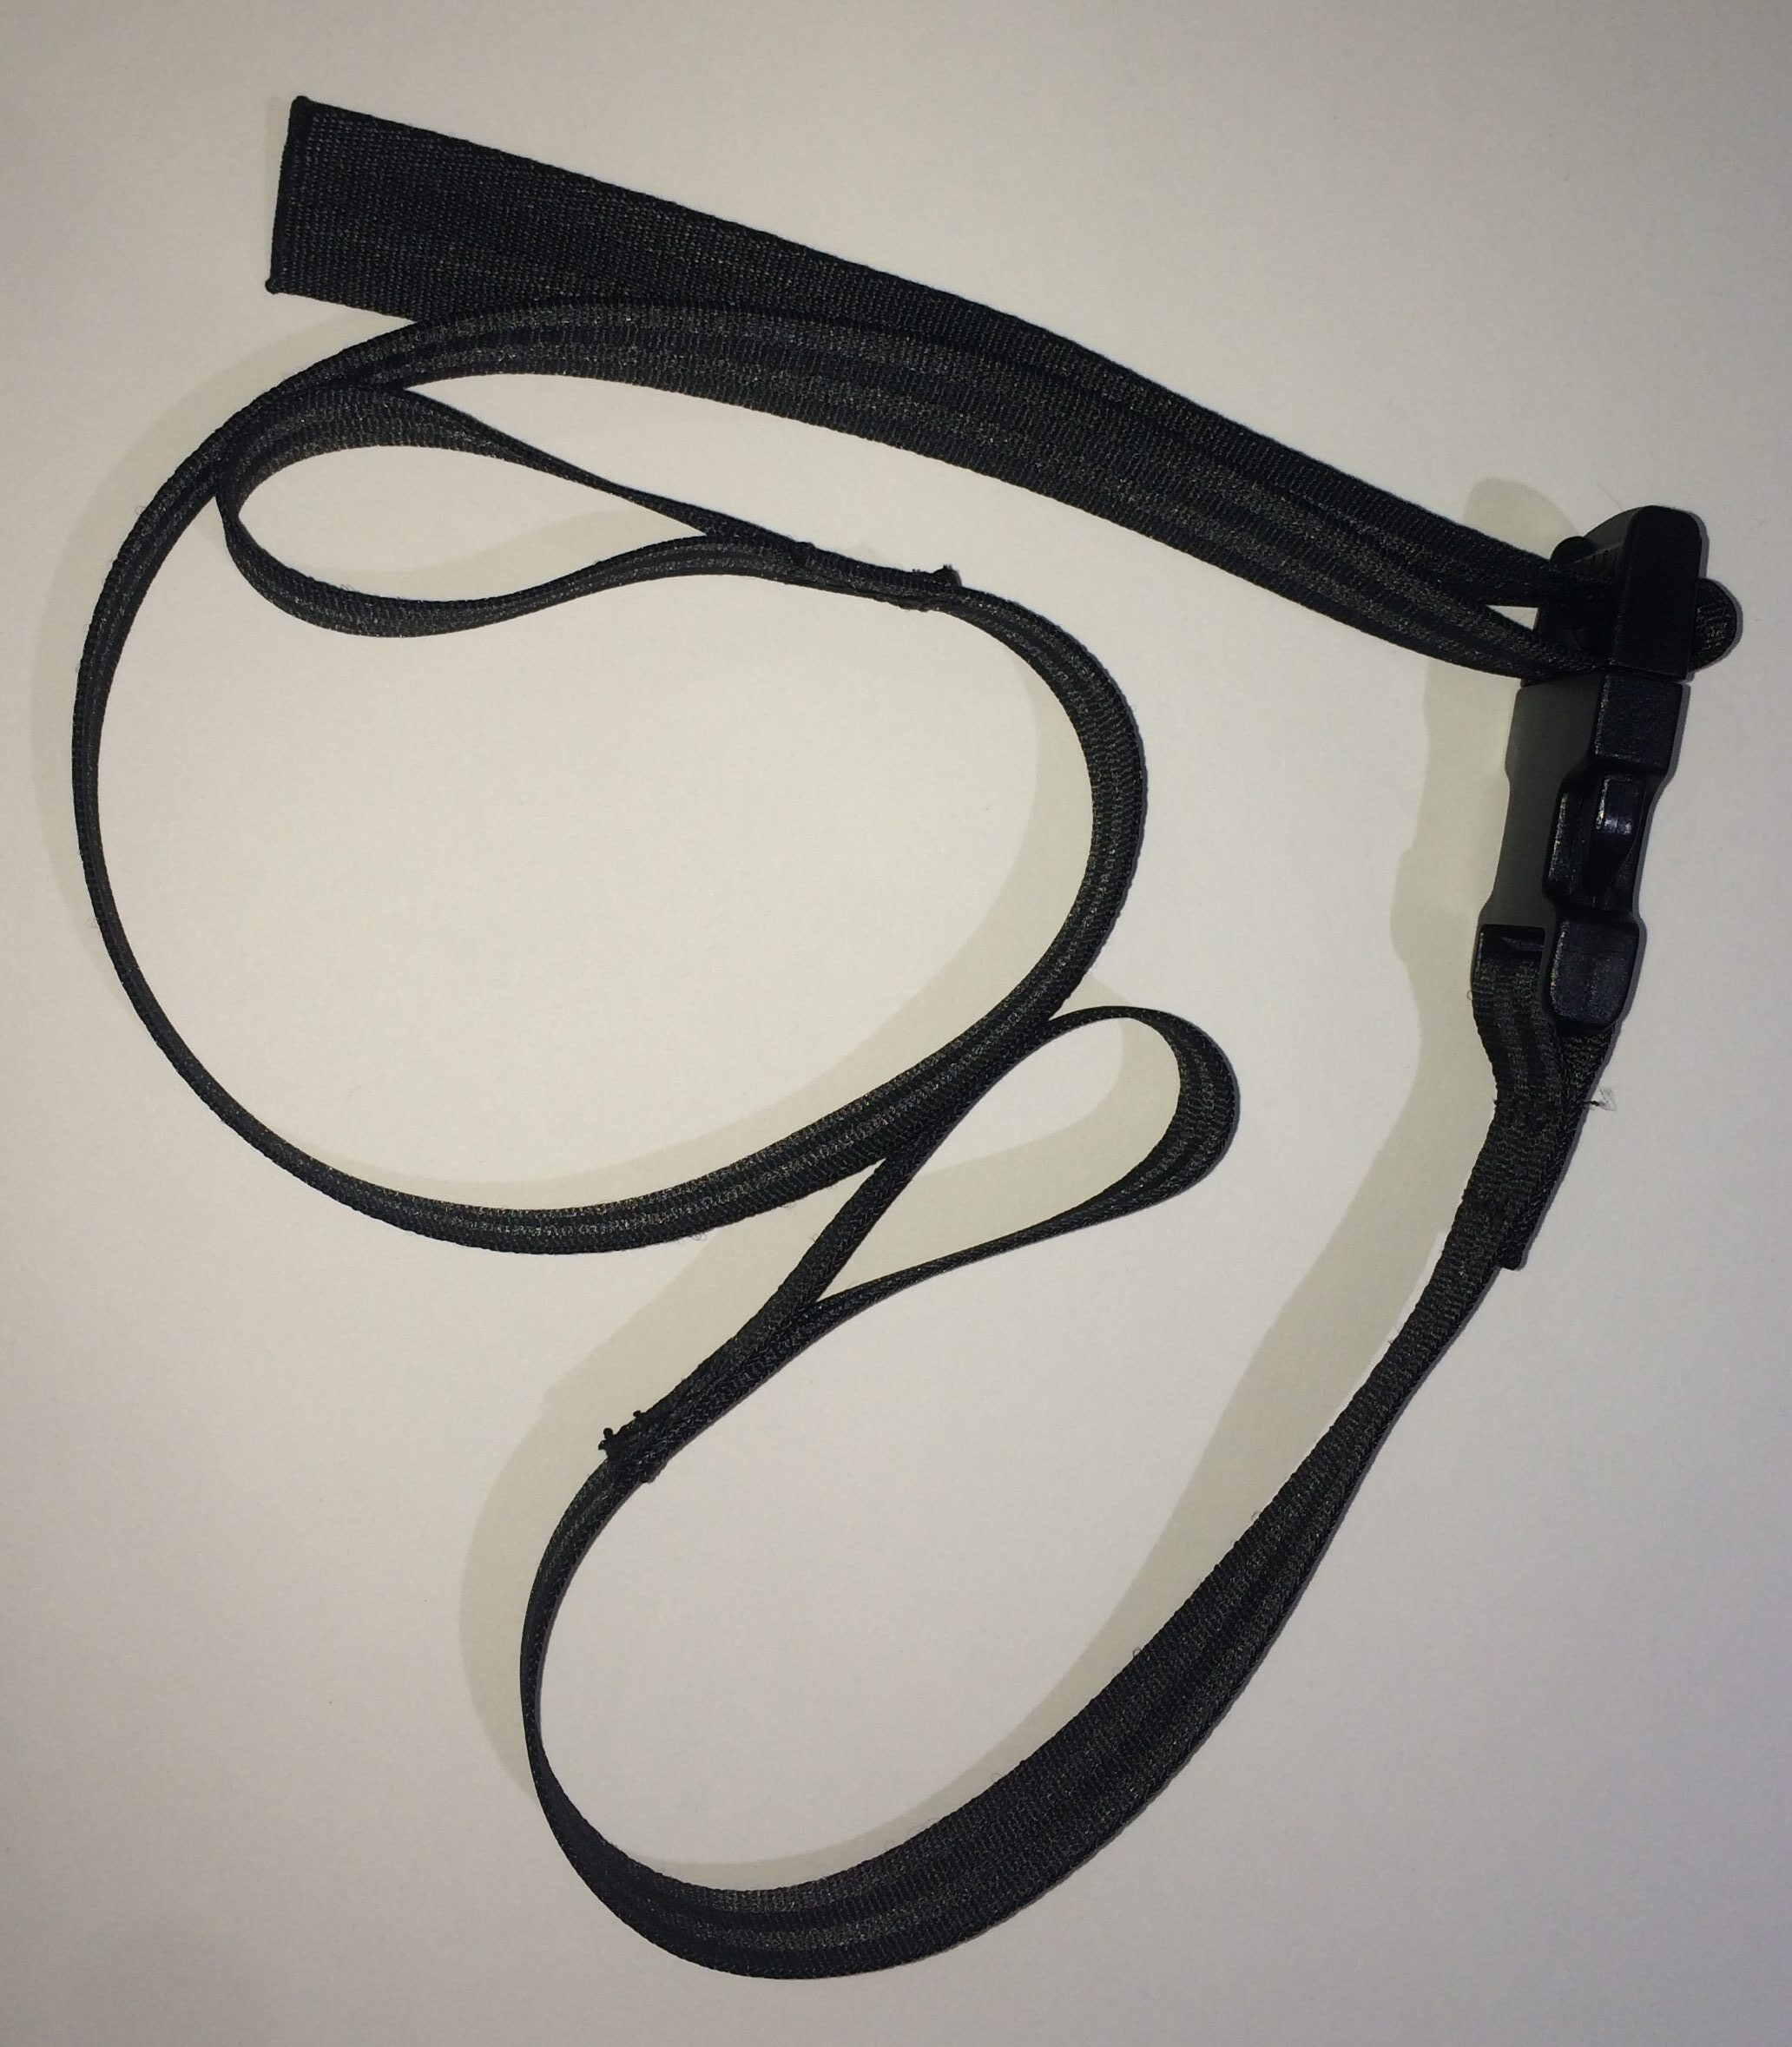 Loop Strap - 25mm Closed